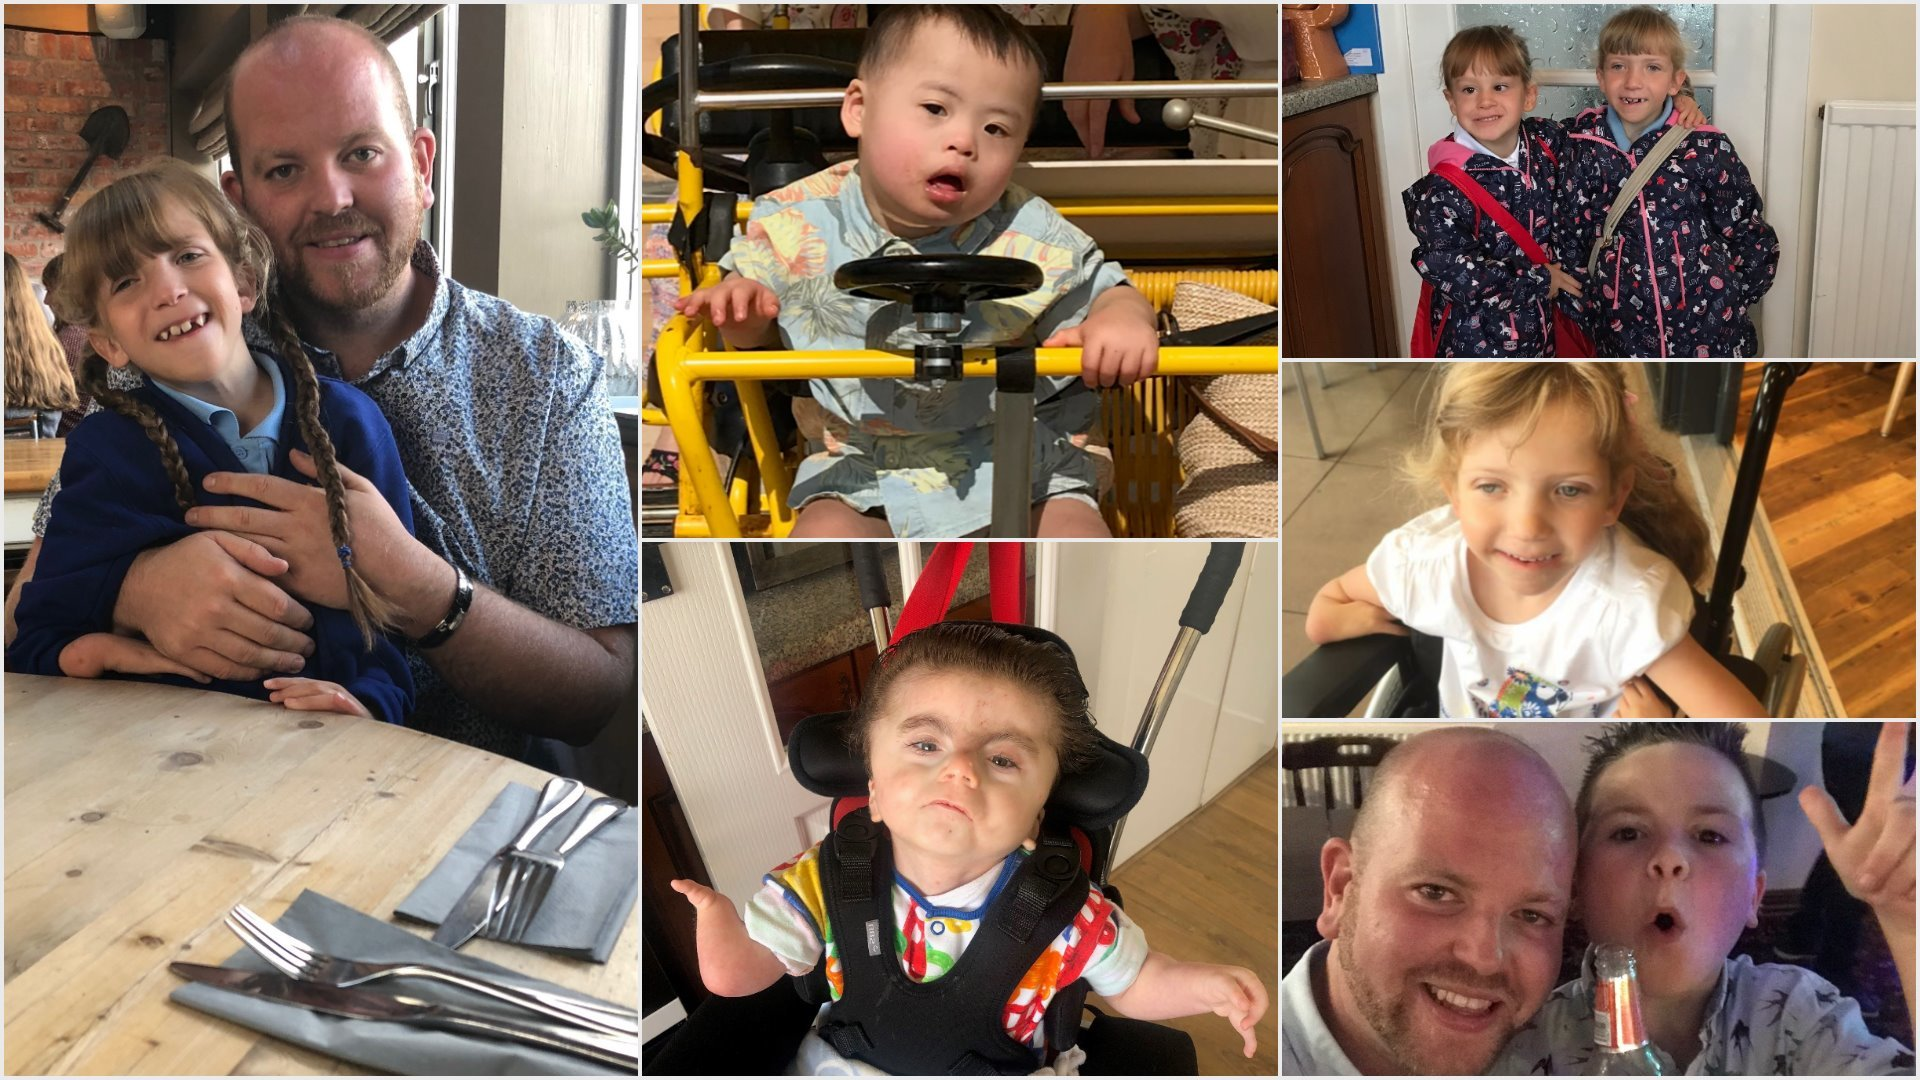 Super dad from Blackwood adopts fifth disabled child an wants others to know more about adoption